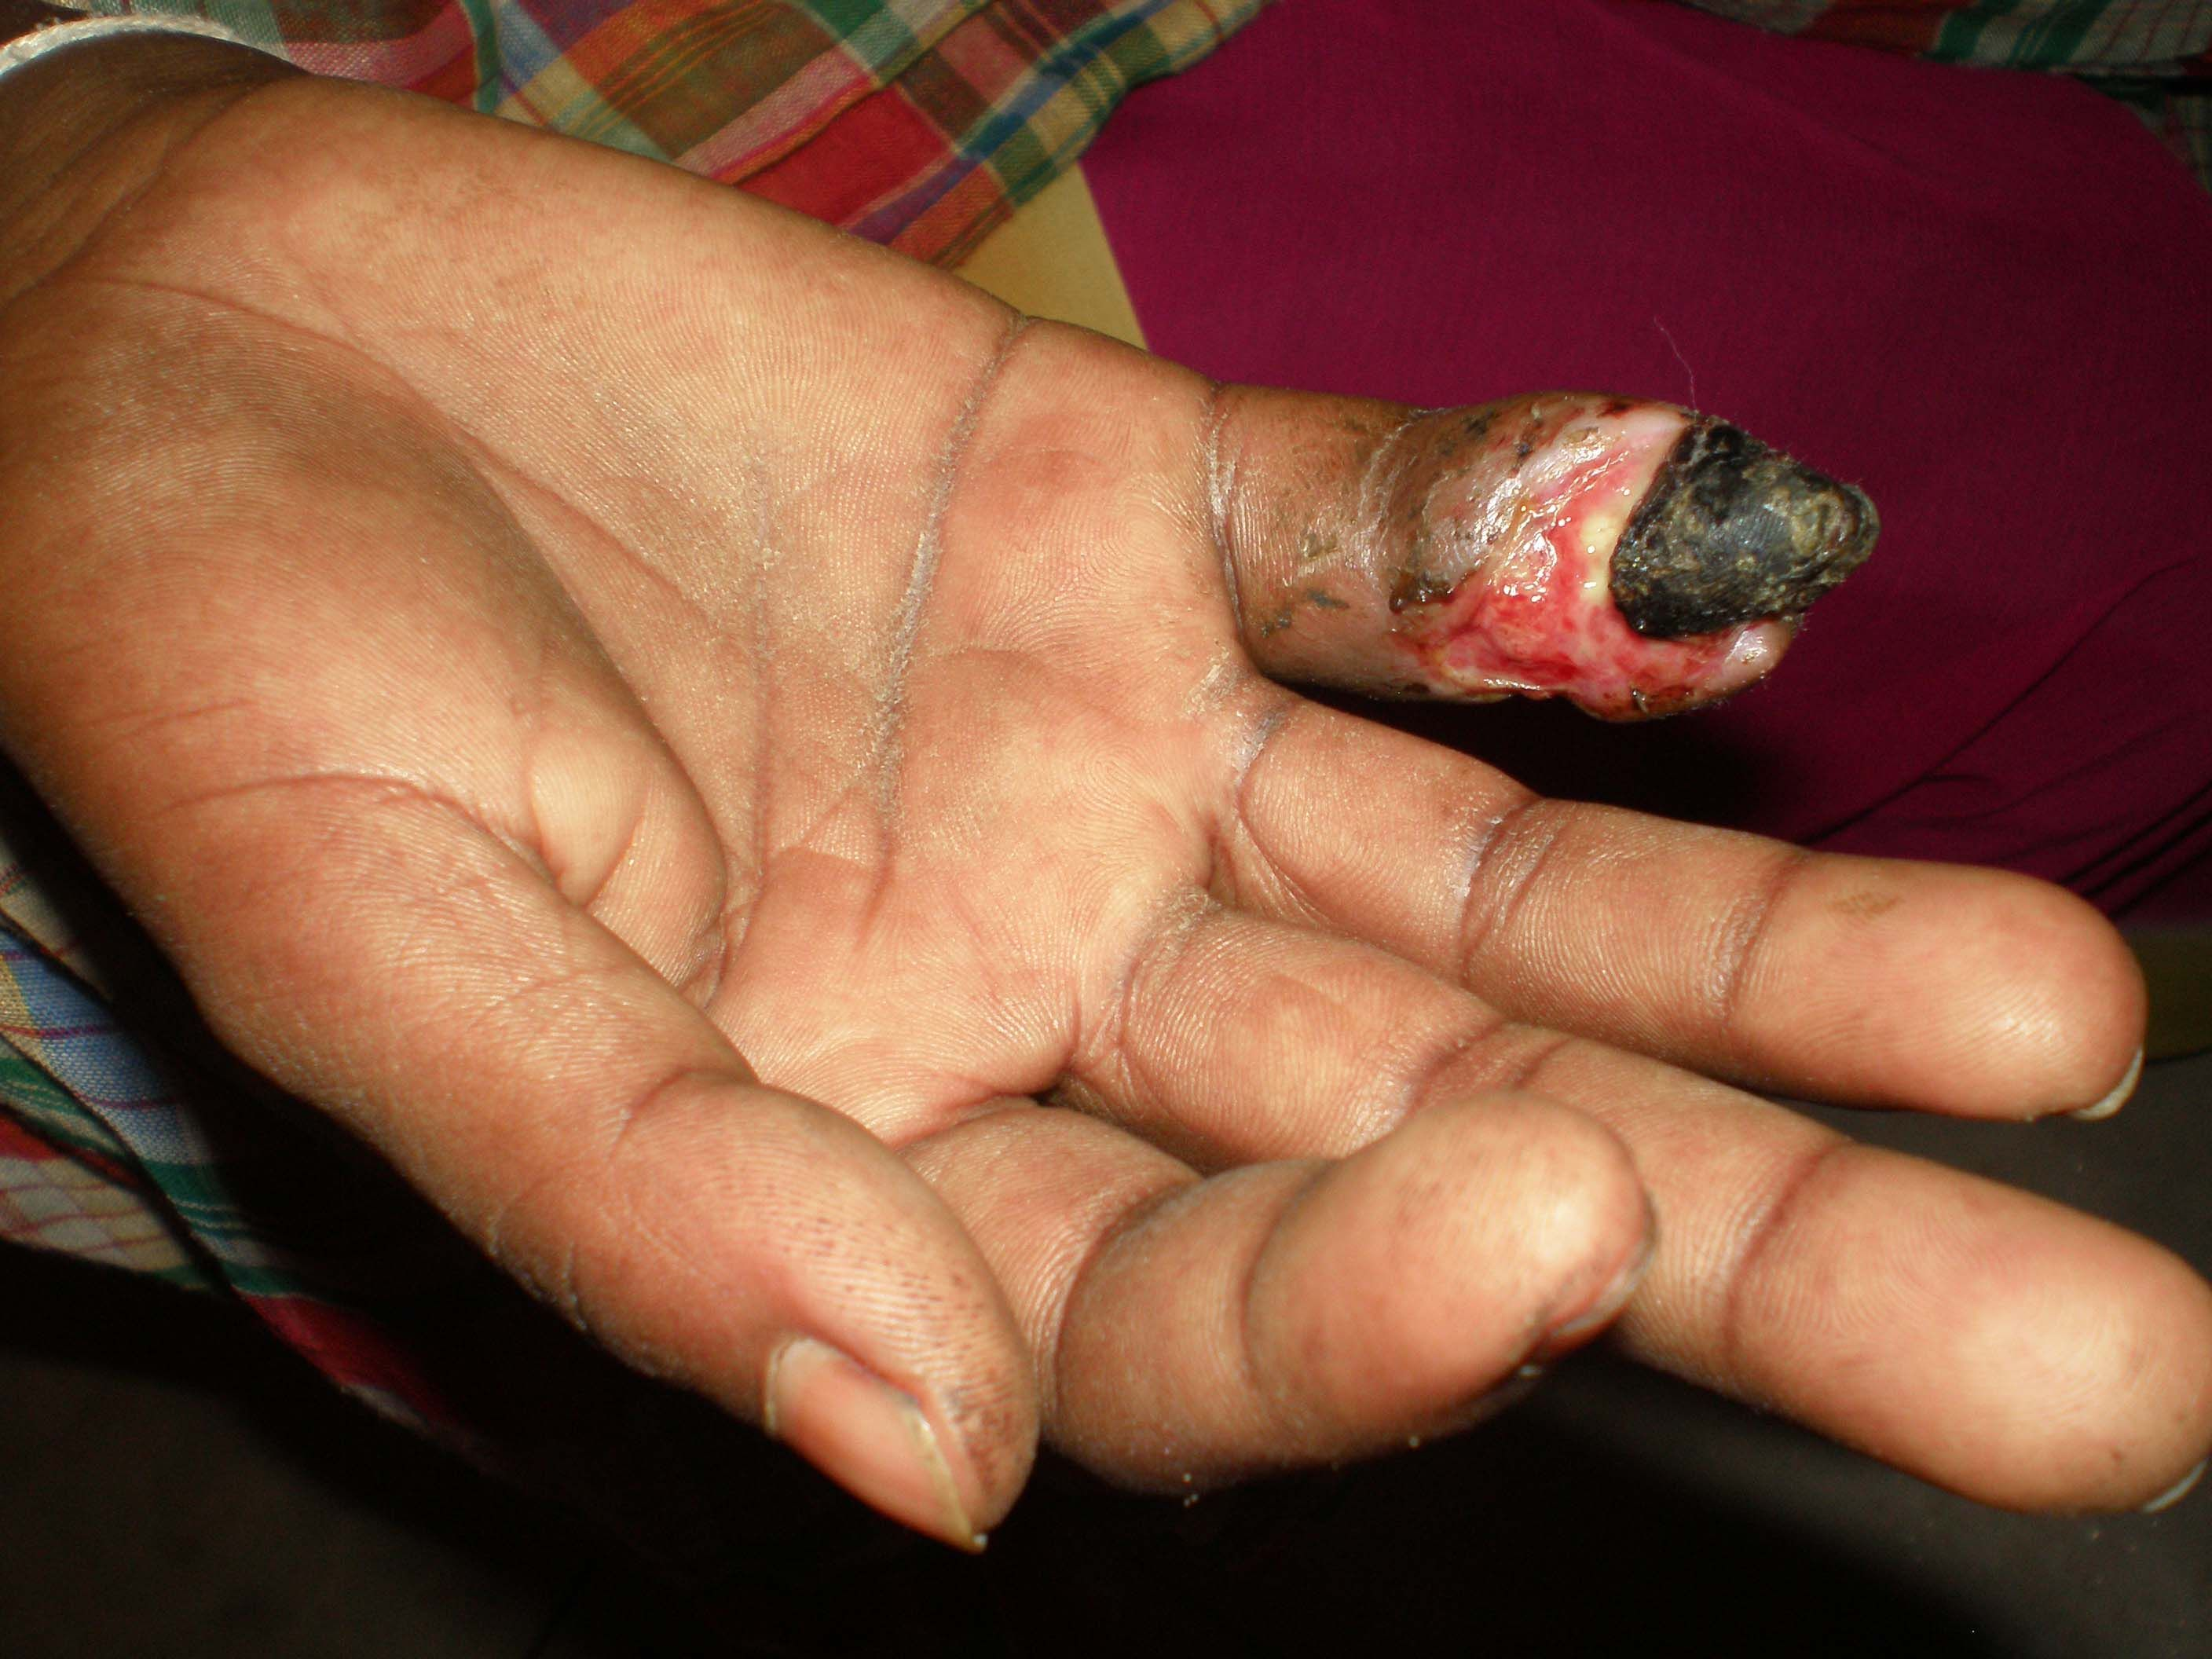 Snake Bites Pictures   Effects of a snake bite on the finger ...